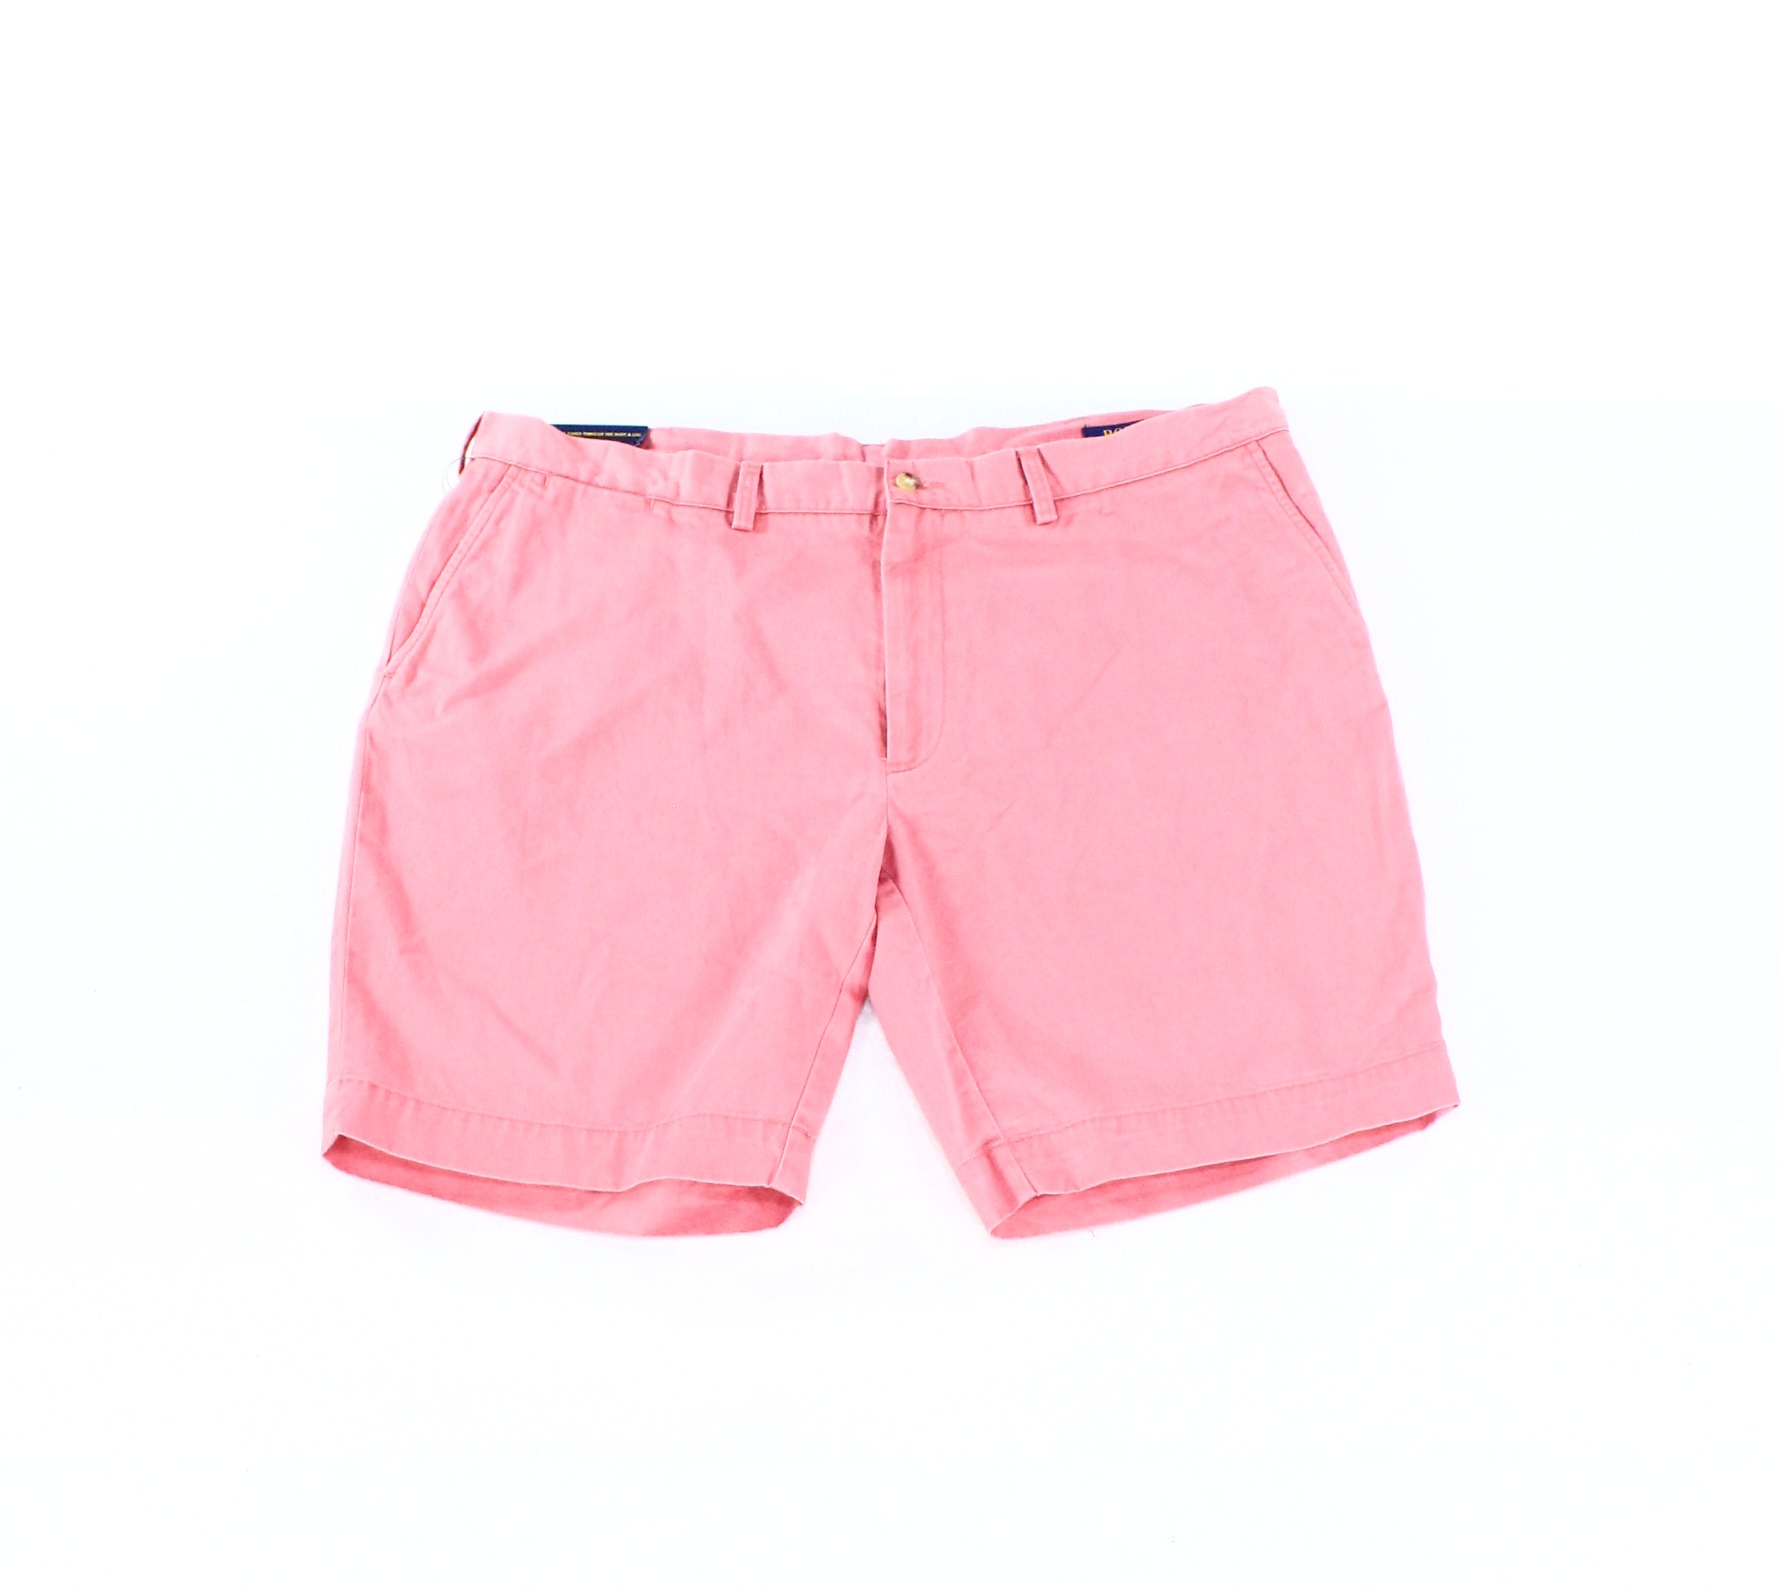 Polo-Ralph-Lauren-NEW-Pink-Mens-US-Size-40-Classic-Fit-Flat-Front-Shorts-75-216